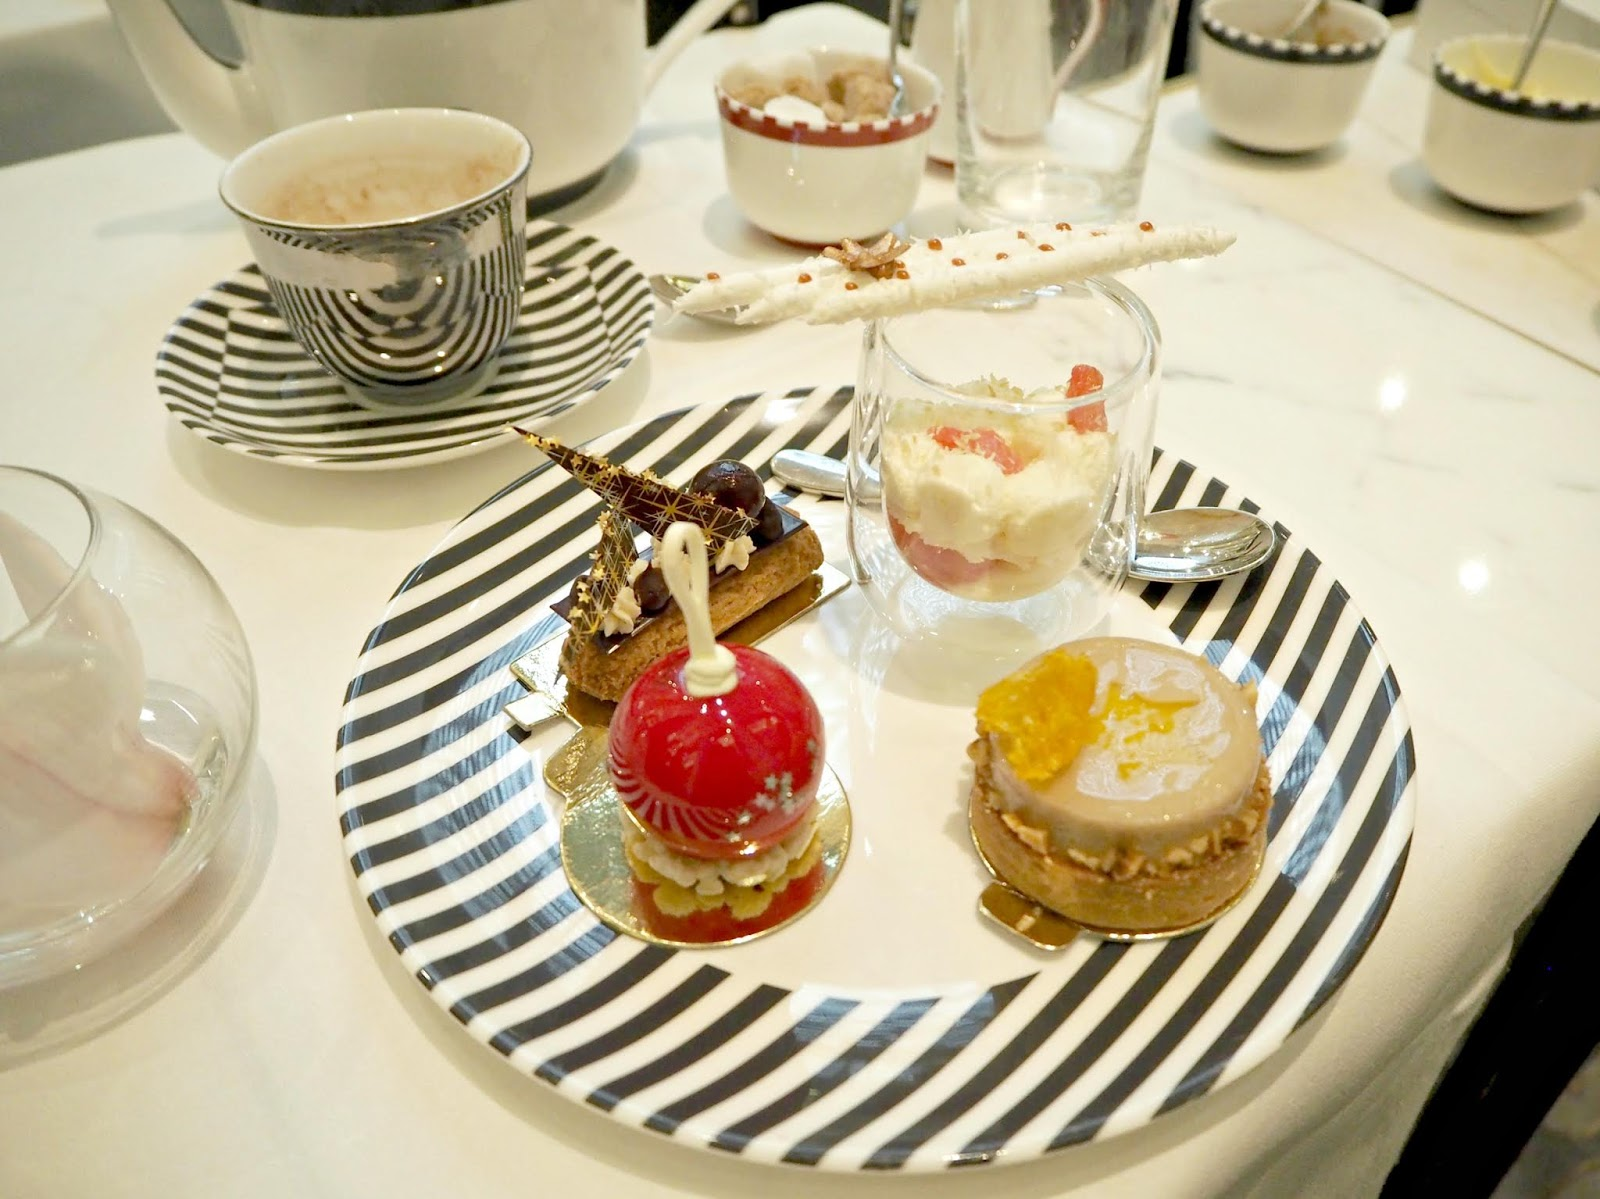 a plate of cake delights british afternoon tea